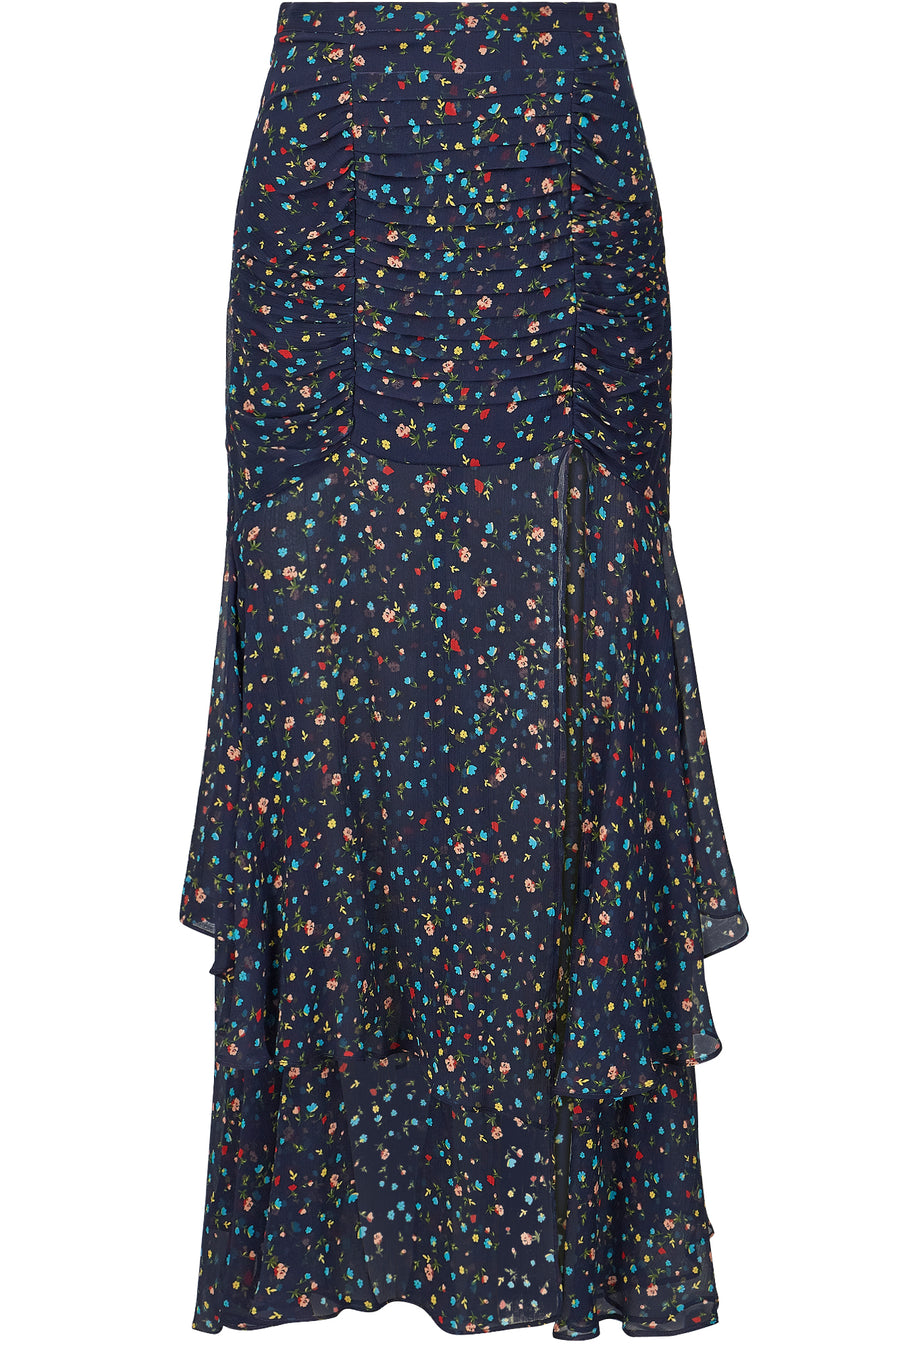 Tuck Front Skirt - Navy Multi